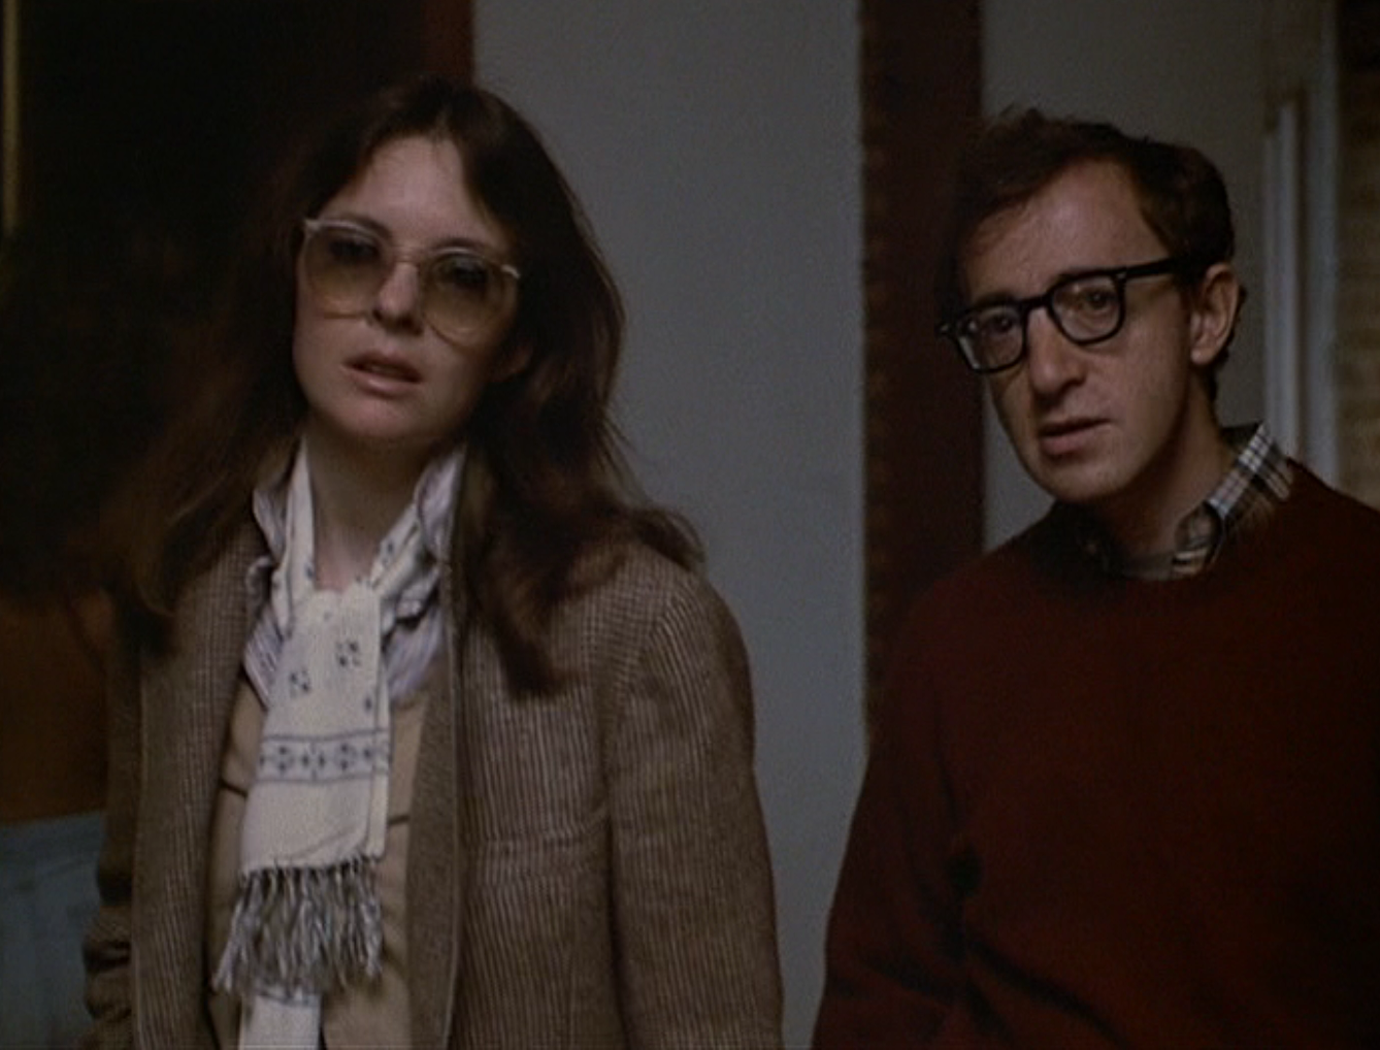 annie hall | The Thinking Tank